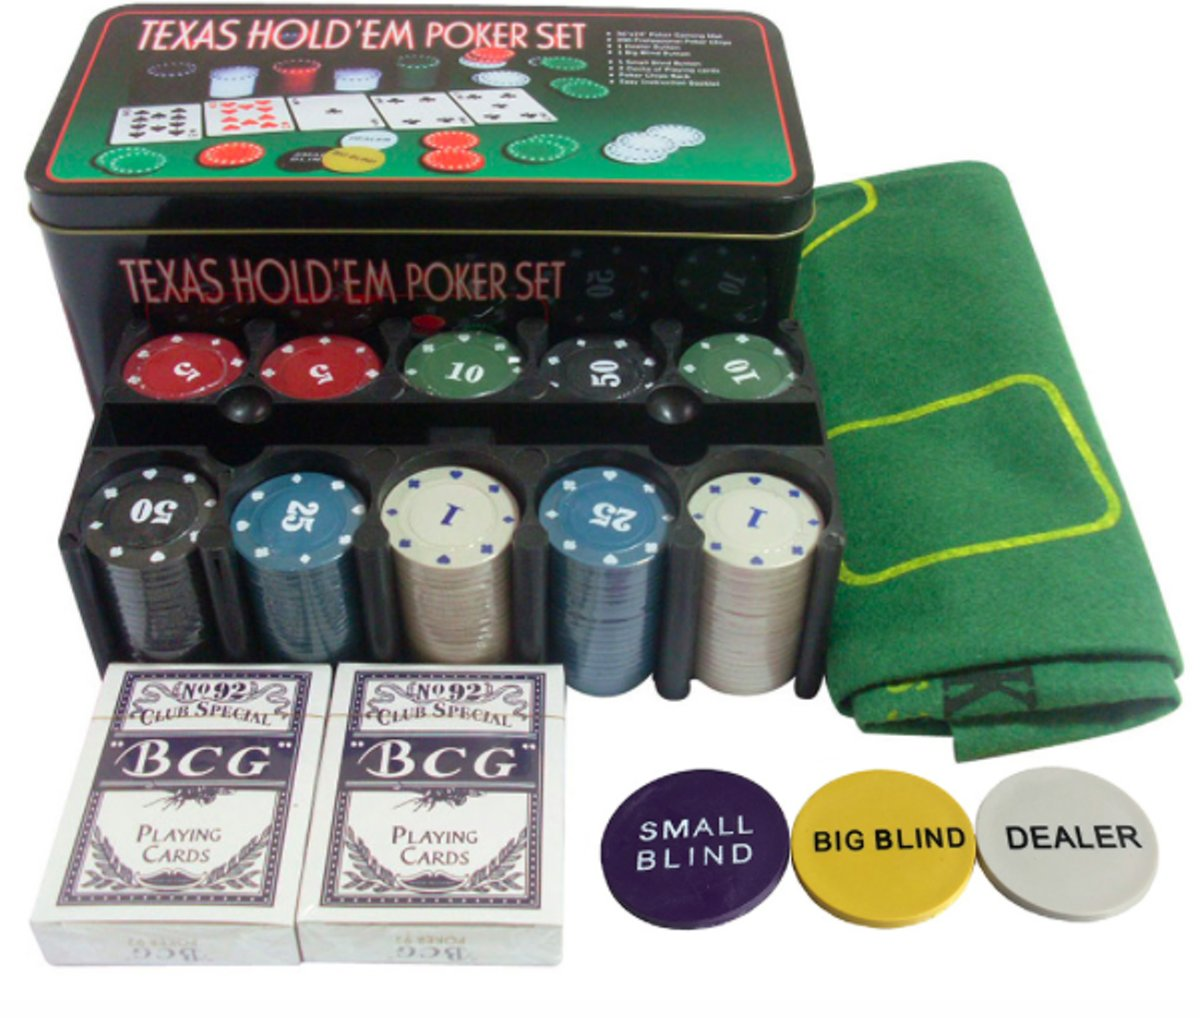 Luxe Pokerset met Chips Speelkaarten en Speelmat – Texas hold'em of Blackjack kopen